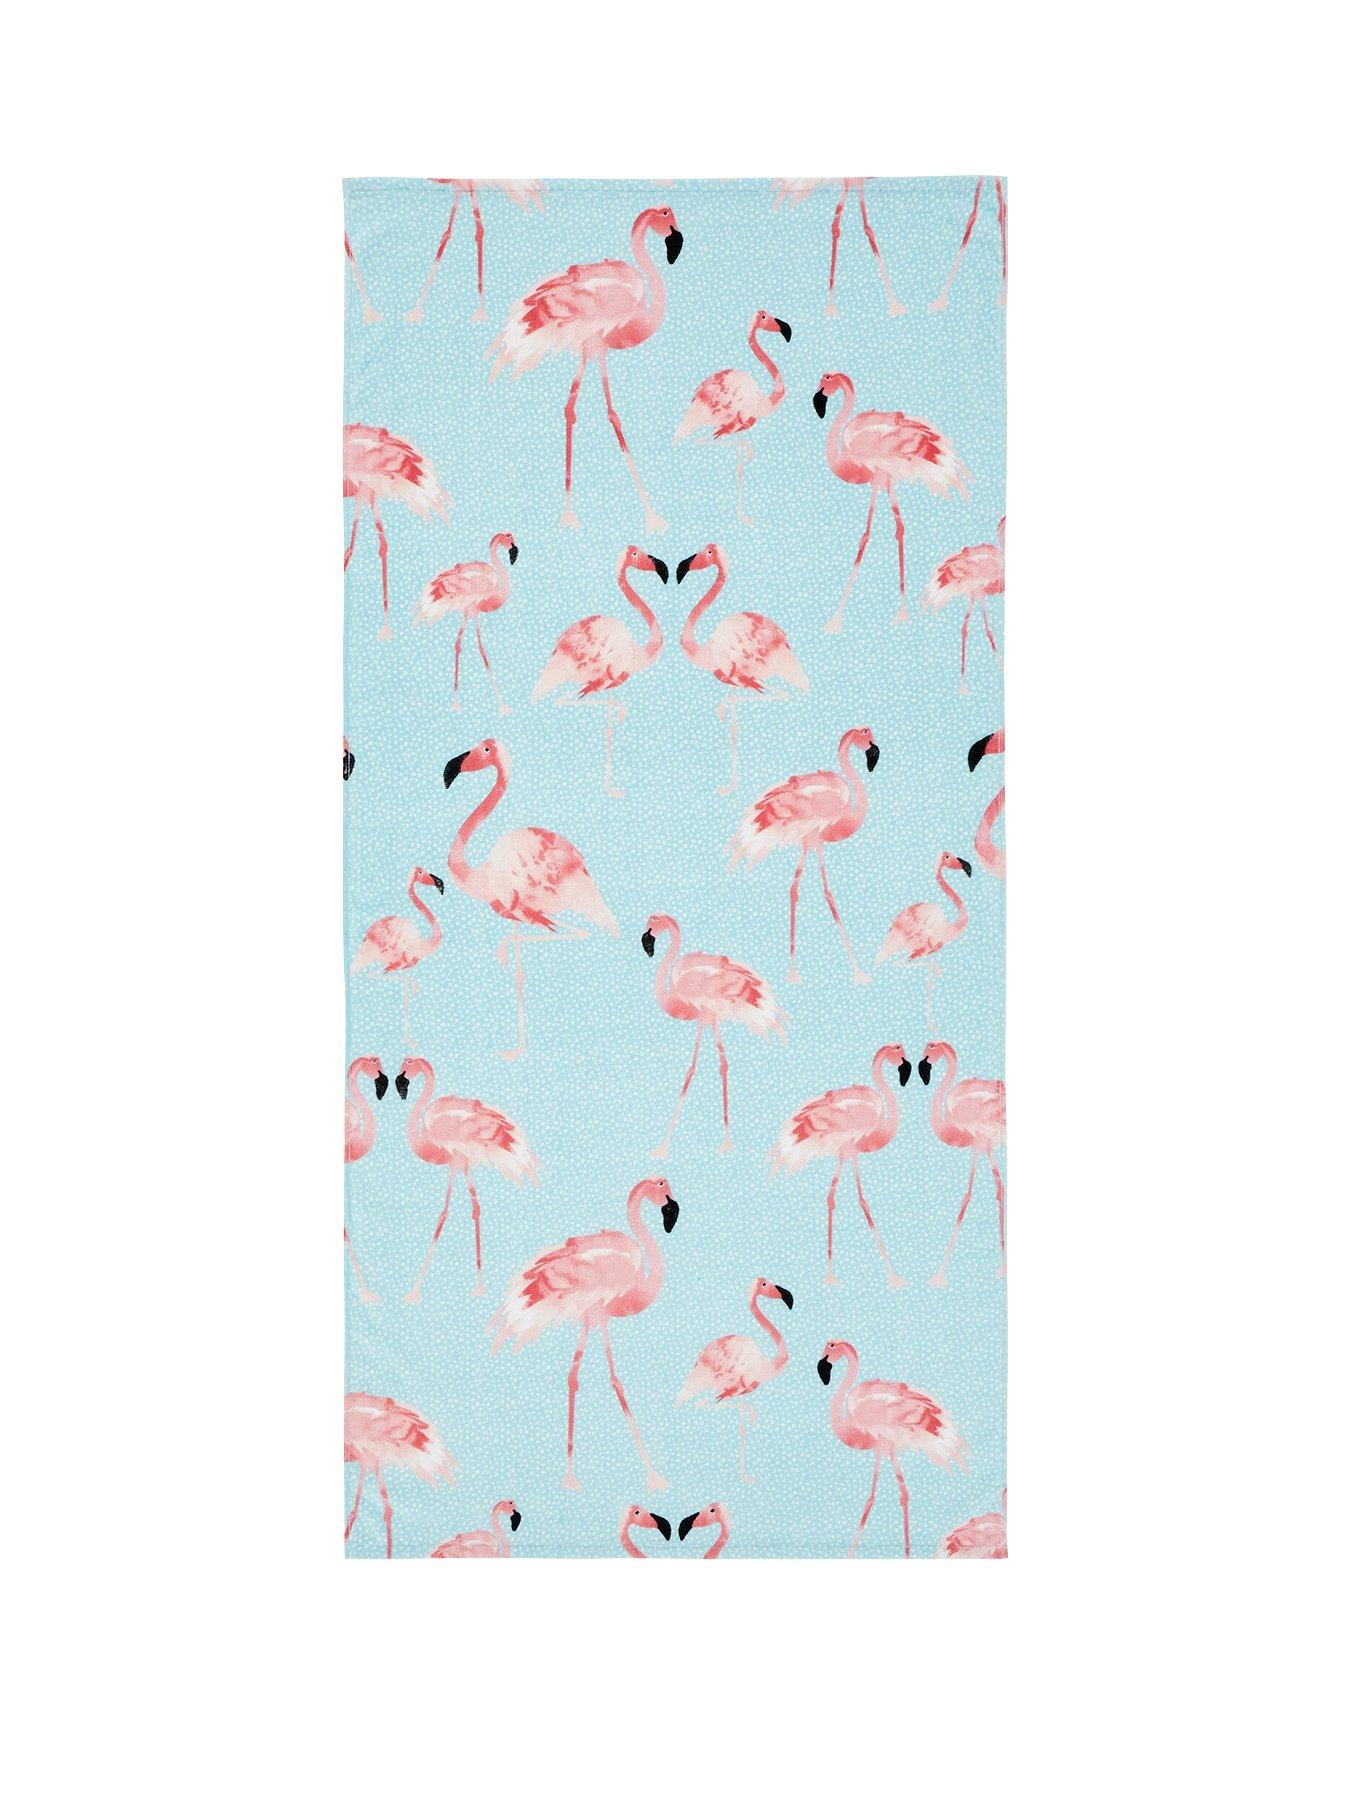 MINNIE MOUSE FLAMINGO BEACH TOWEL NEW